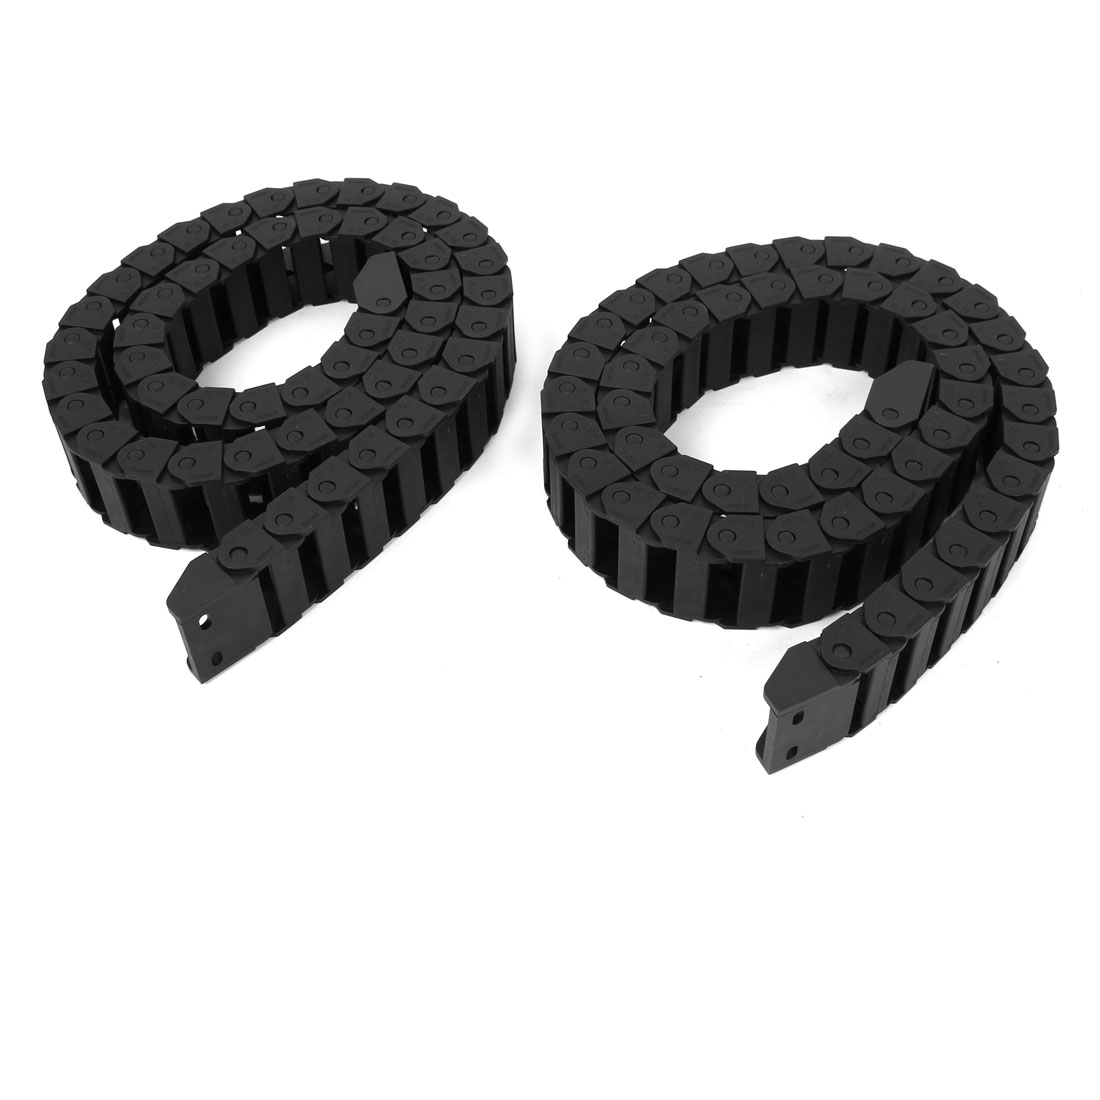 2 Pcs Black Plastic Drag Chain Cable Carrier 15 x 30mm for CNC Machine